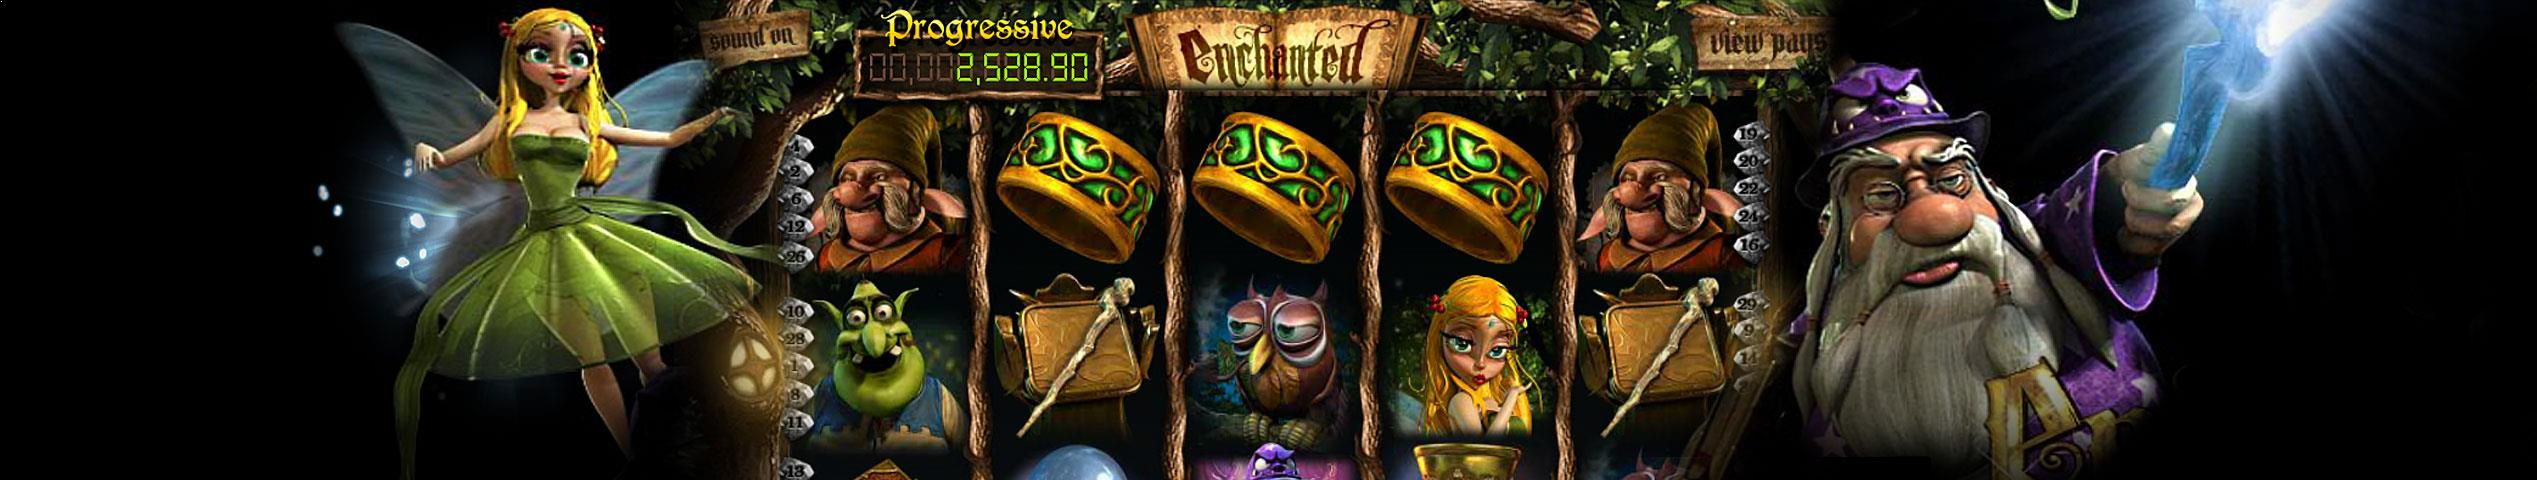 Enchanted JP Multa Baft jocuri slot slider Betsoft